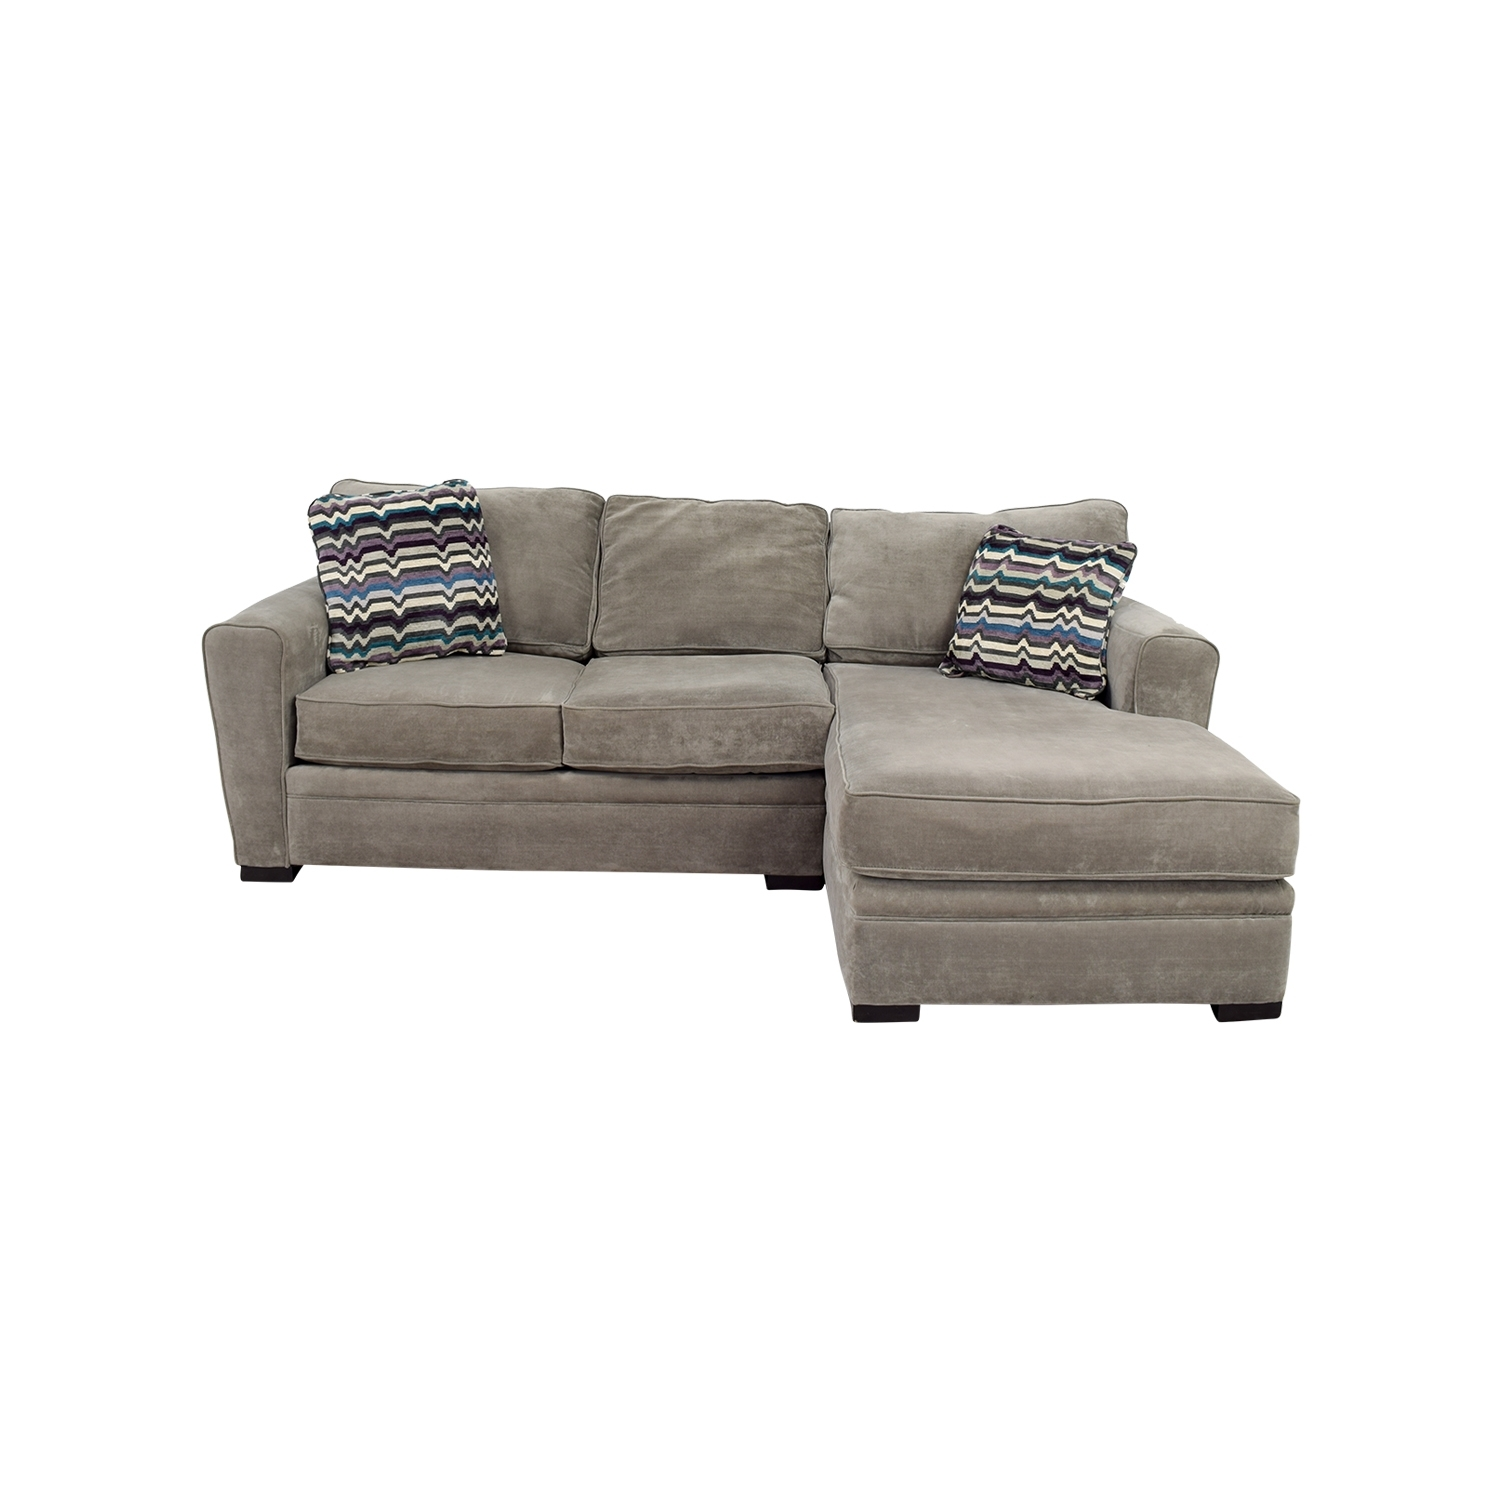 54% Off - Raymour & Flanigan Raymour & Flanigan Artemis Ii intended for Sectional Sofas at Raymour and Flanigan